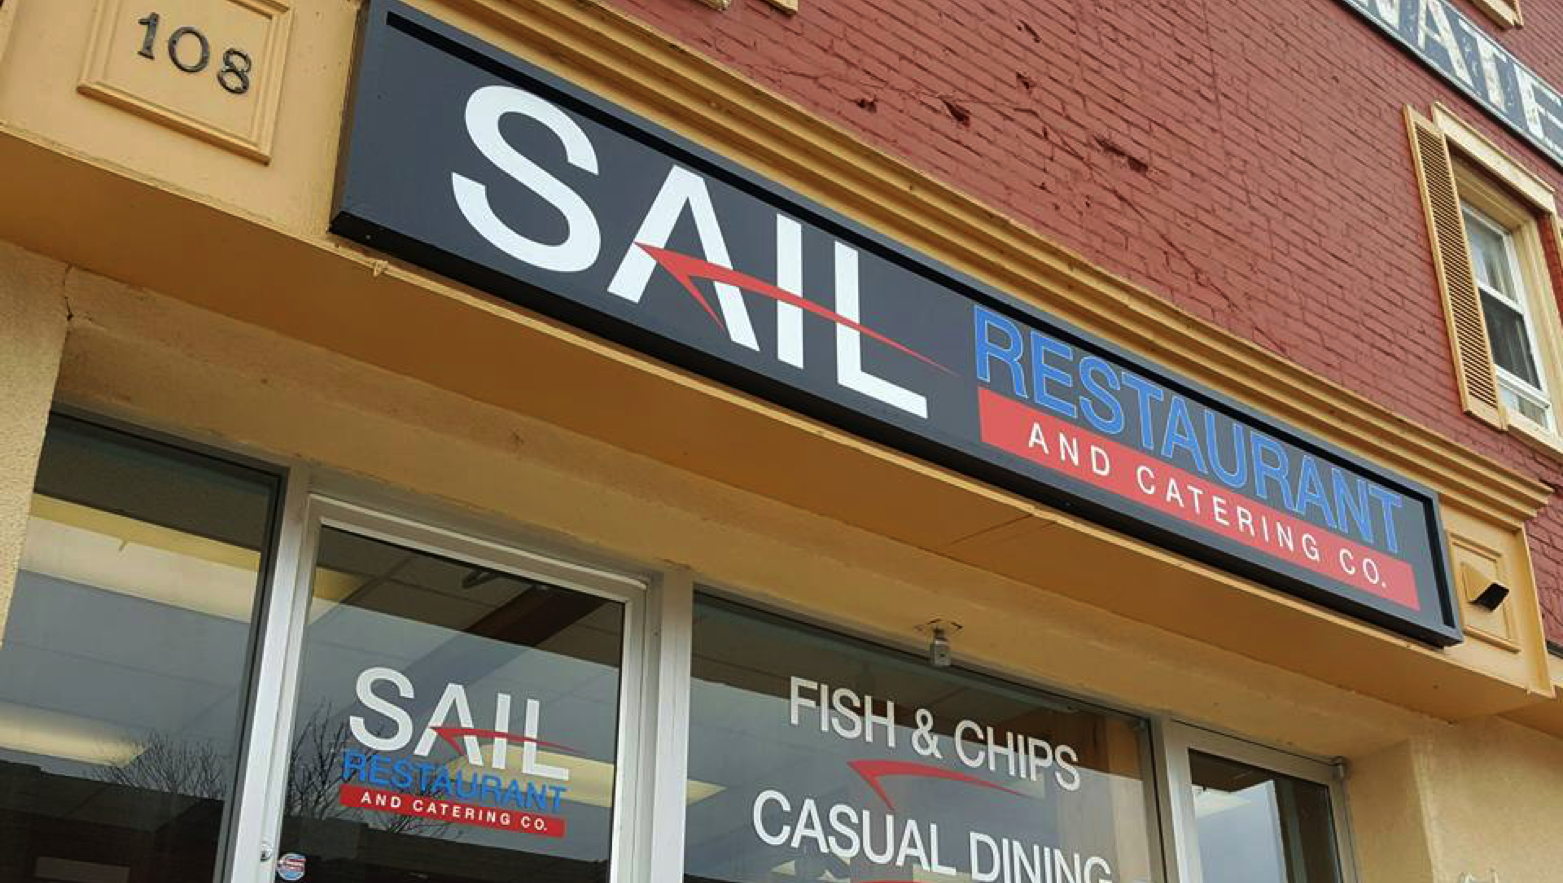 Sail Restaurant and Catering Co. logo